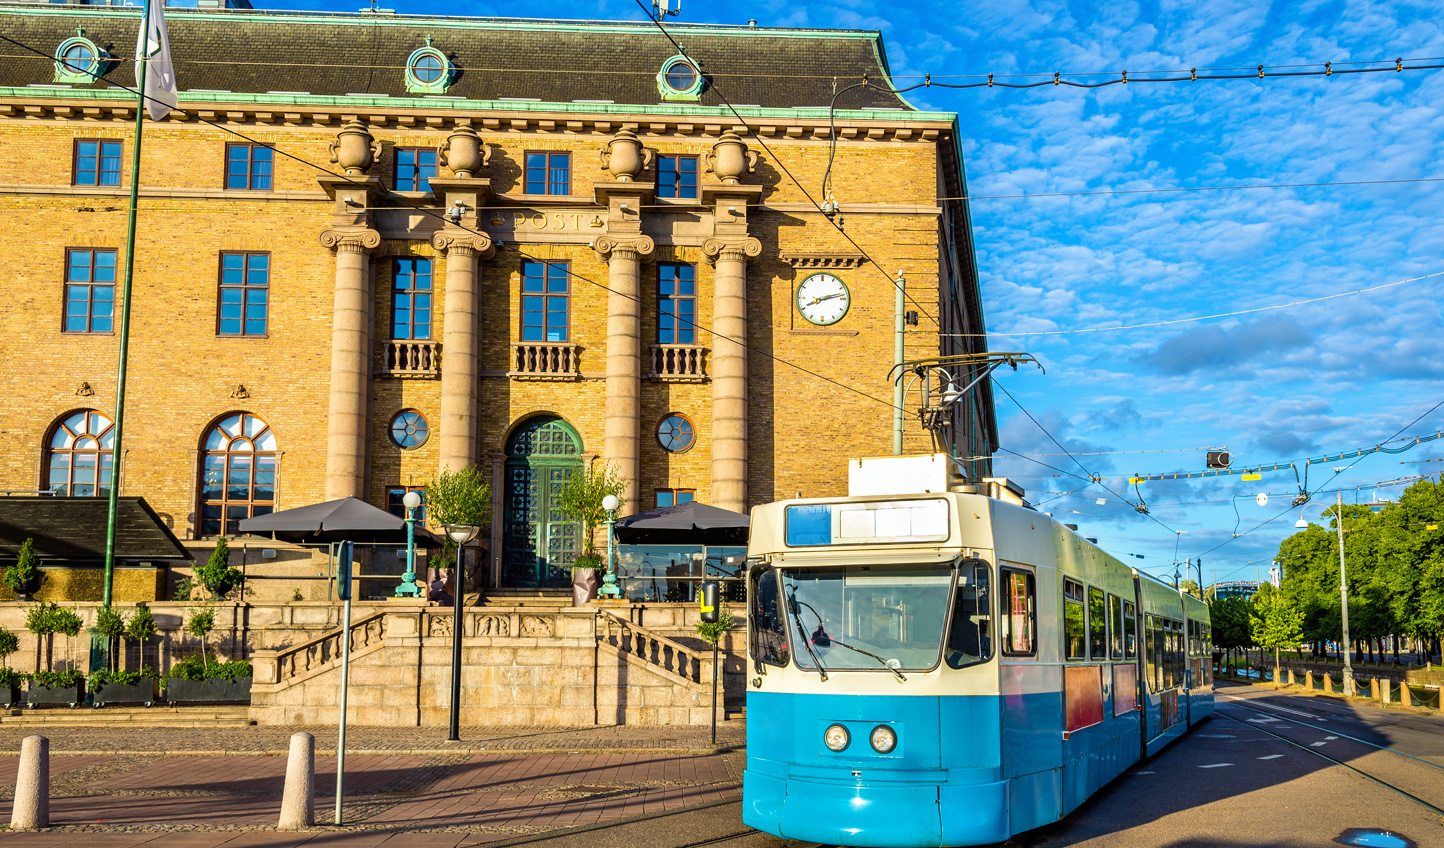 Trams through the city